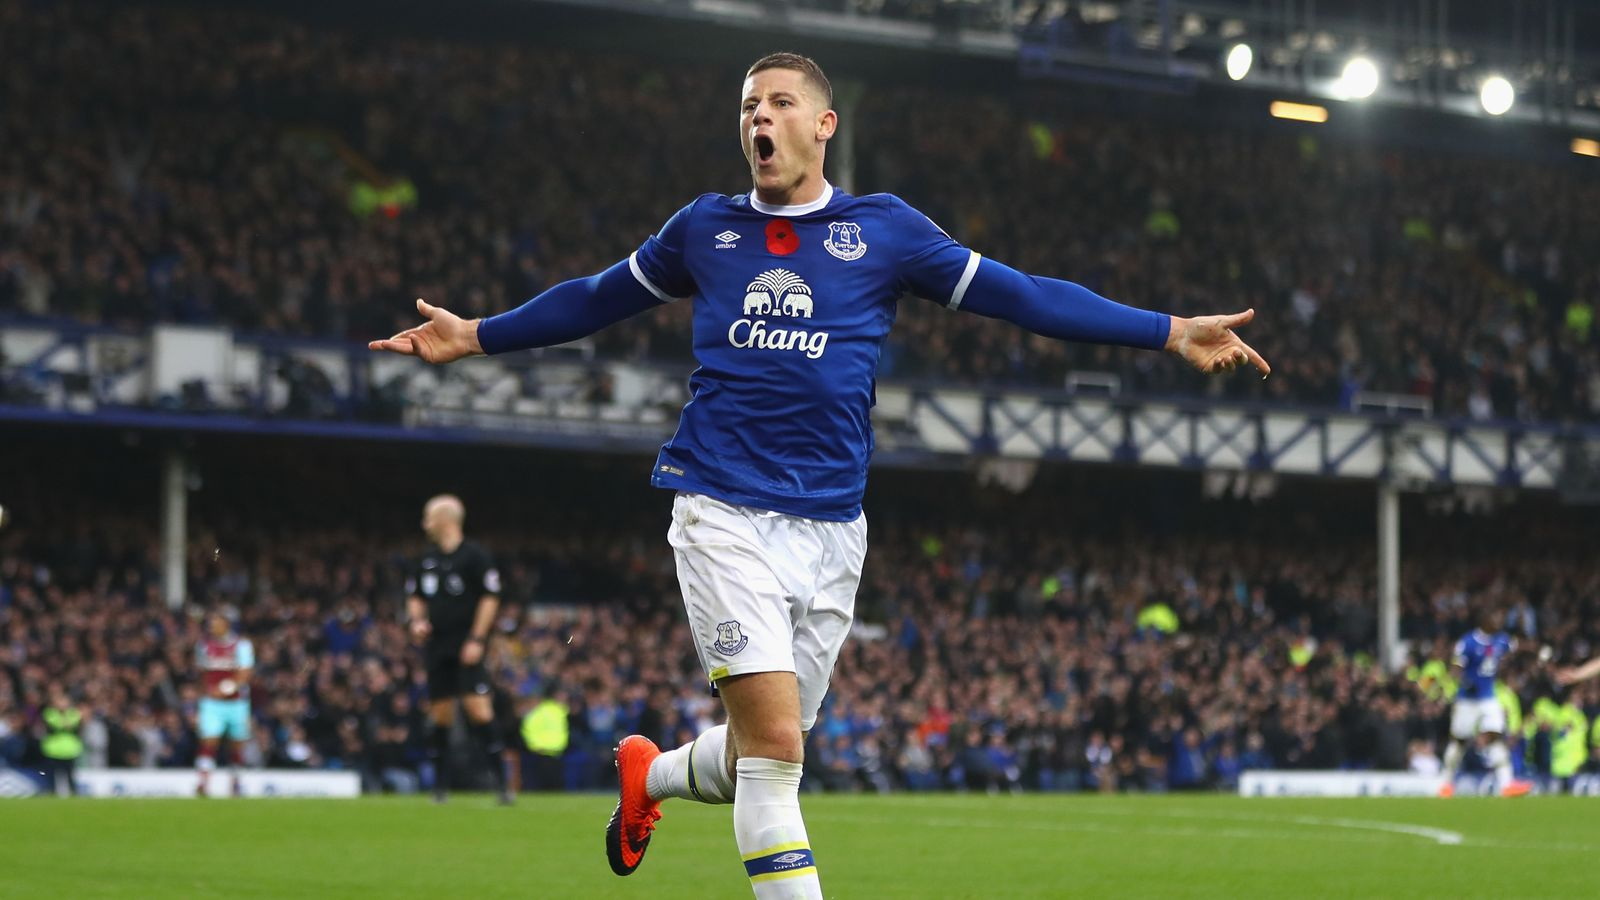 Everton star punched in 'unprovoked' attack